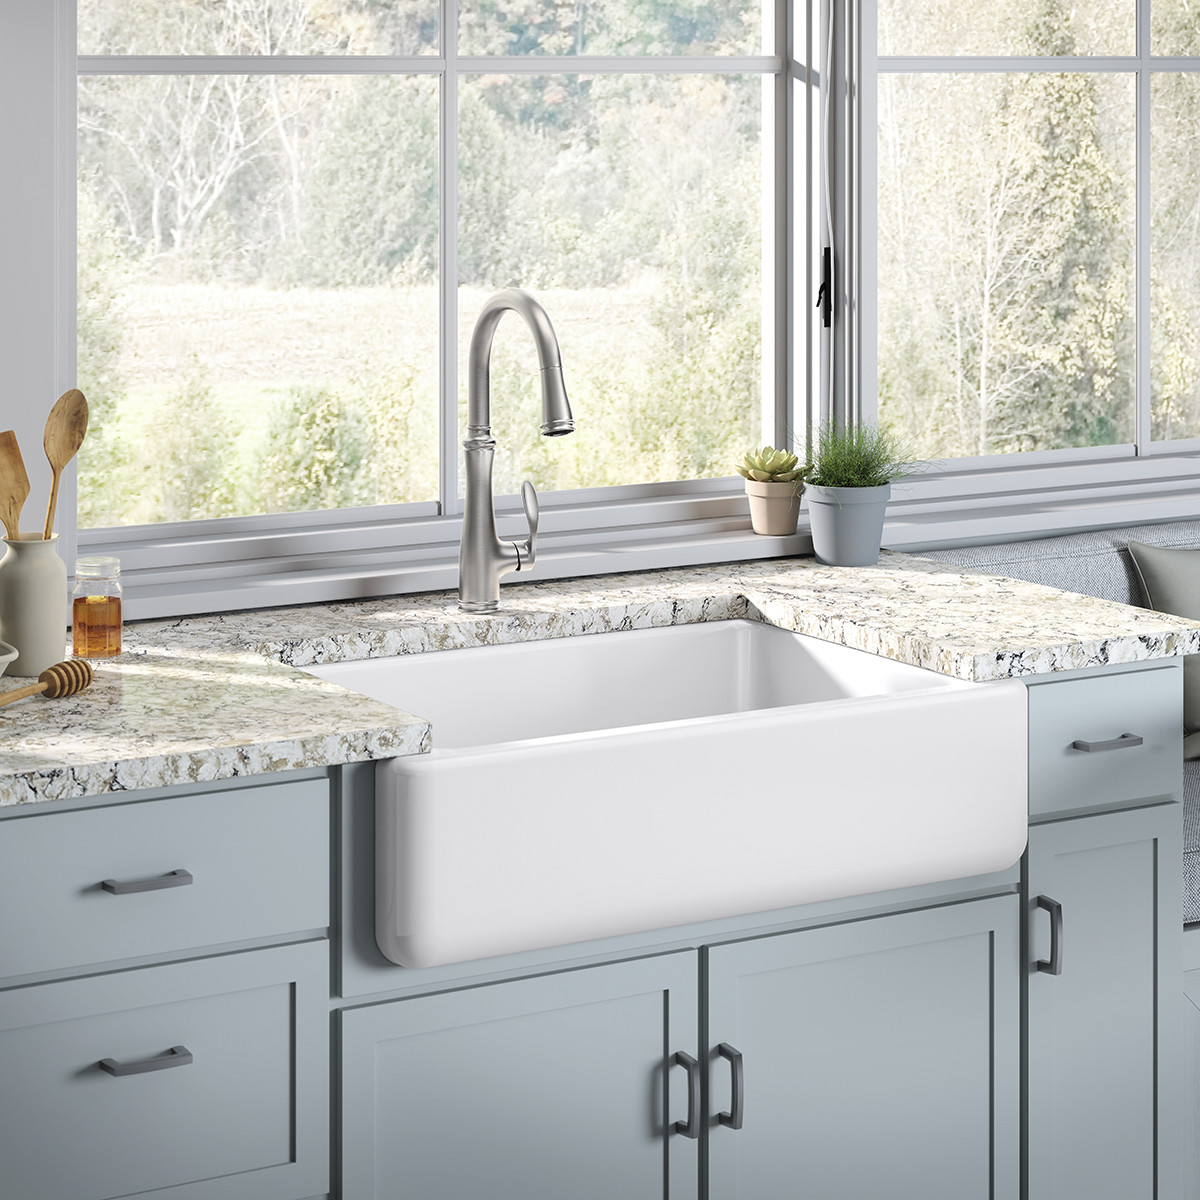 Kohler Bellera 1 Or 3 Hole Kitchen Sink Faucet With Pull Down 16 3 4 Spout Right Hand Lever Handle Docknetik Magnetic Docking System 3 Function Sprayhead Featuring Sweep Spray Vibrant Stainless Walmart Com Walmart Com